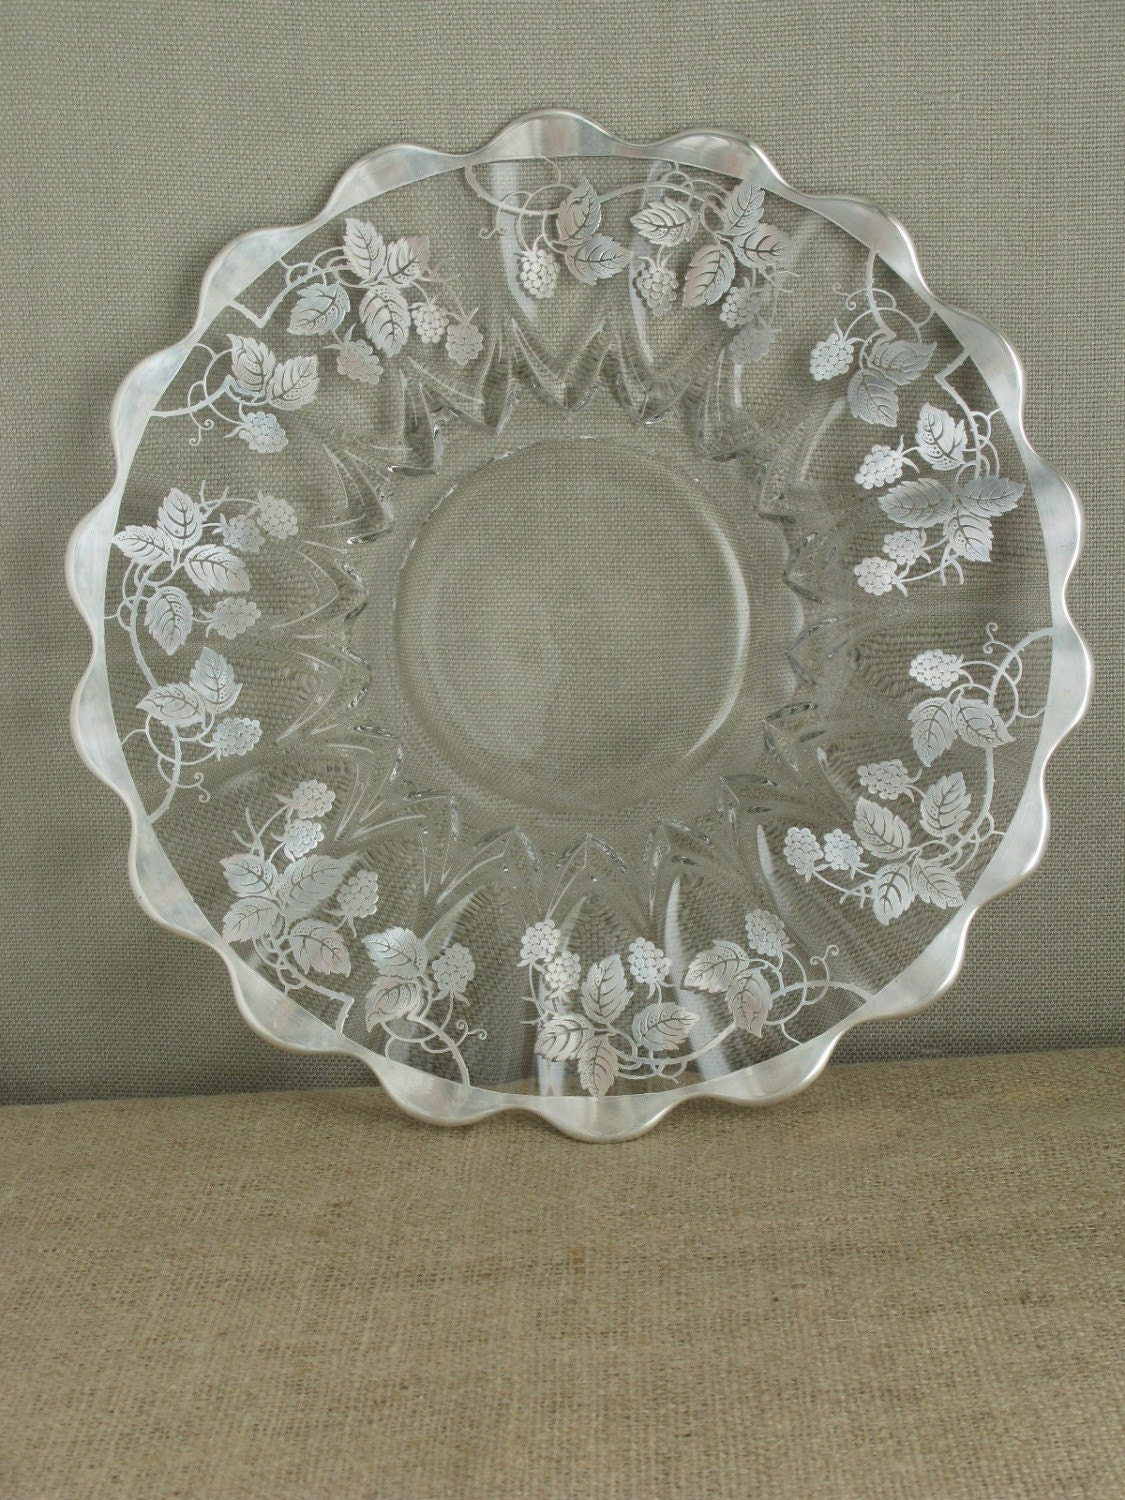 1920s Cake Plate with Sterling Silver Overlay